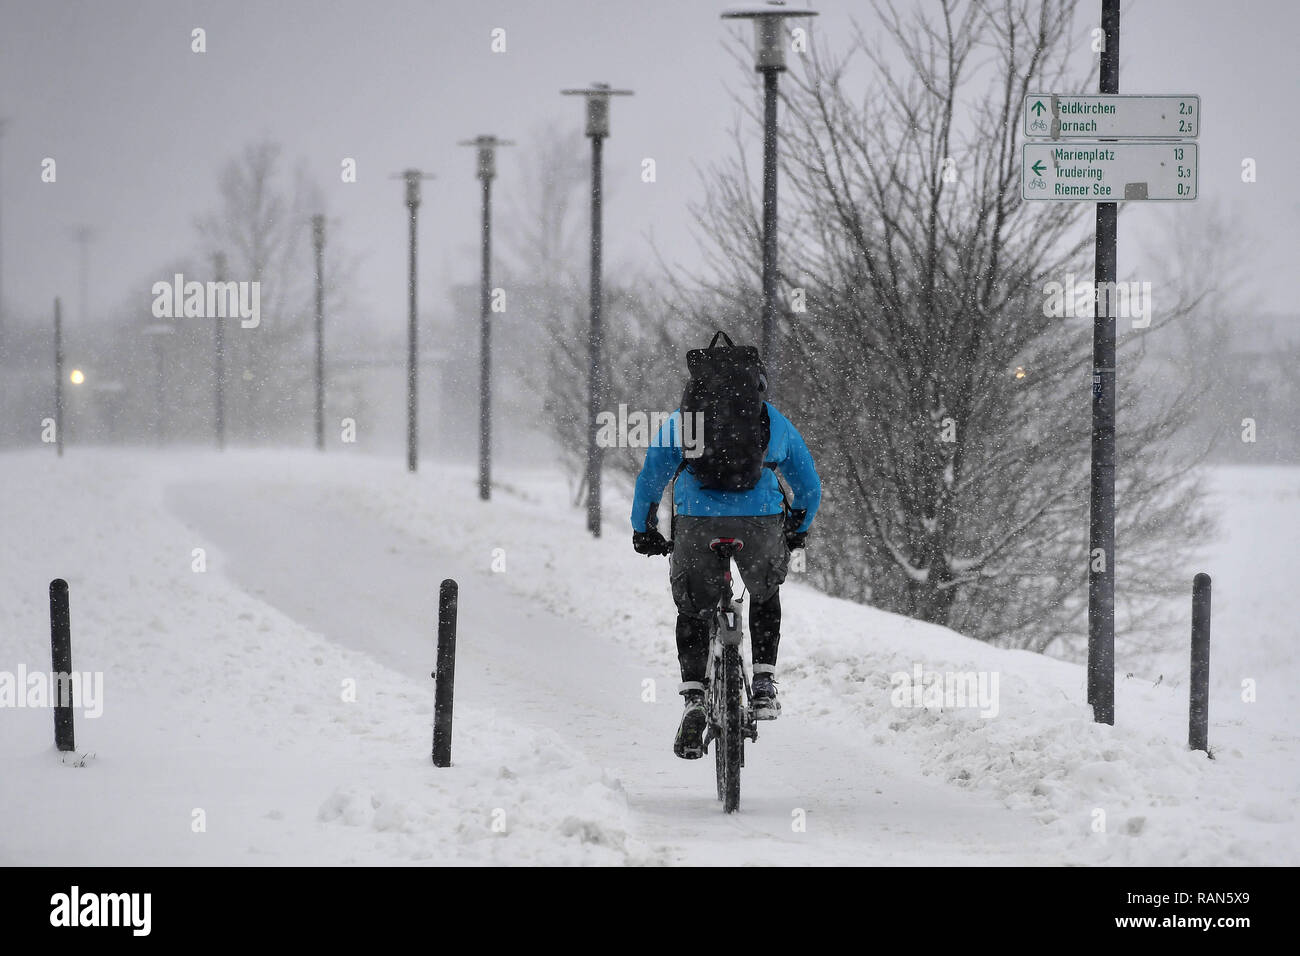 Munich Riem, Deutschland. 05th Jan, 2019. Wetterfeature-Fahrradkurier, Fahrradfahrer with backpack defies the snowdrifts and windbows on a snow-covered path in the Riemer Park.Radfahren in the snow Continuing snowfall on 05.01.2019, ensure snow chaos, traffic chaos, winter in Bavaria.   usage worldwide Credit: dpa/Alamy Live News Credit: dpa picture alliance/Alamy Live News Stock Photo